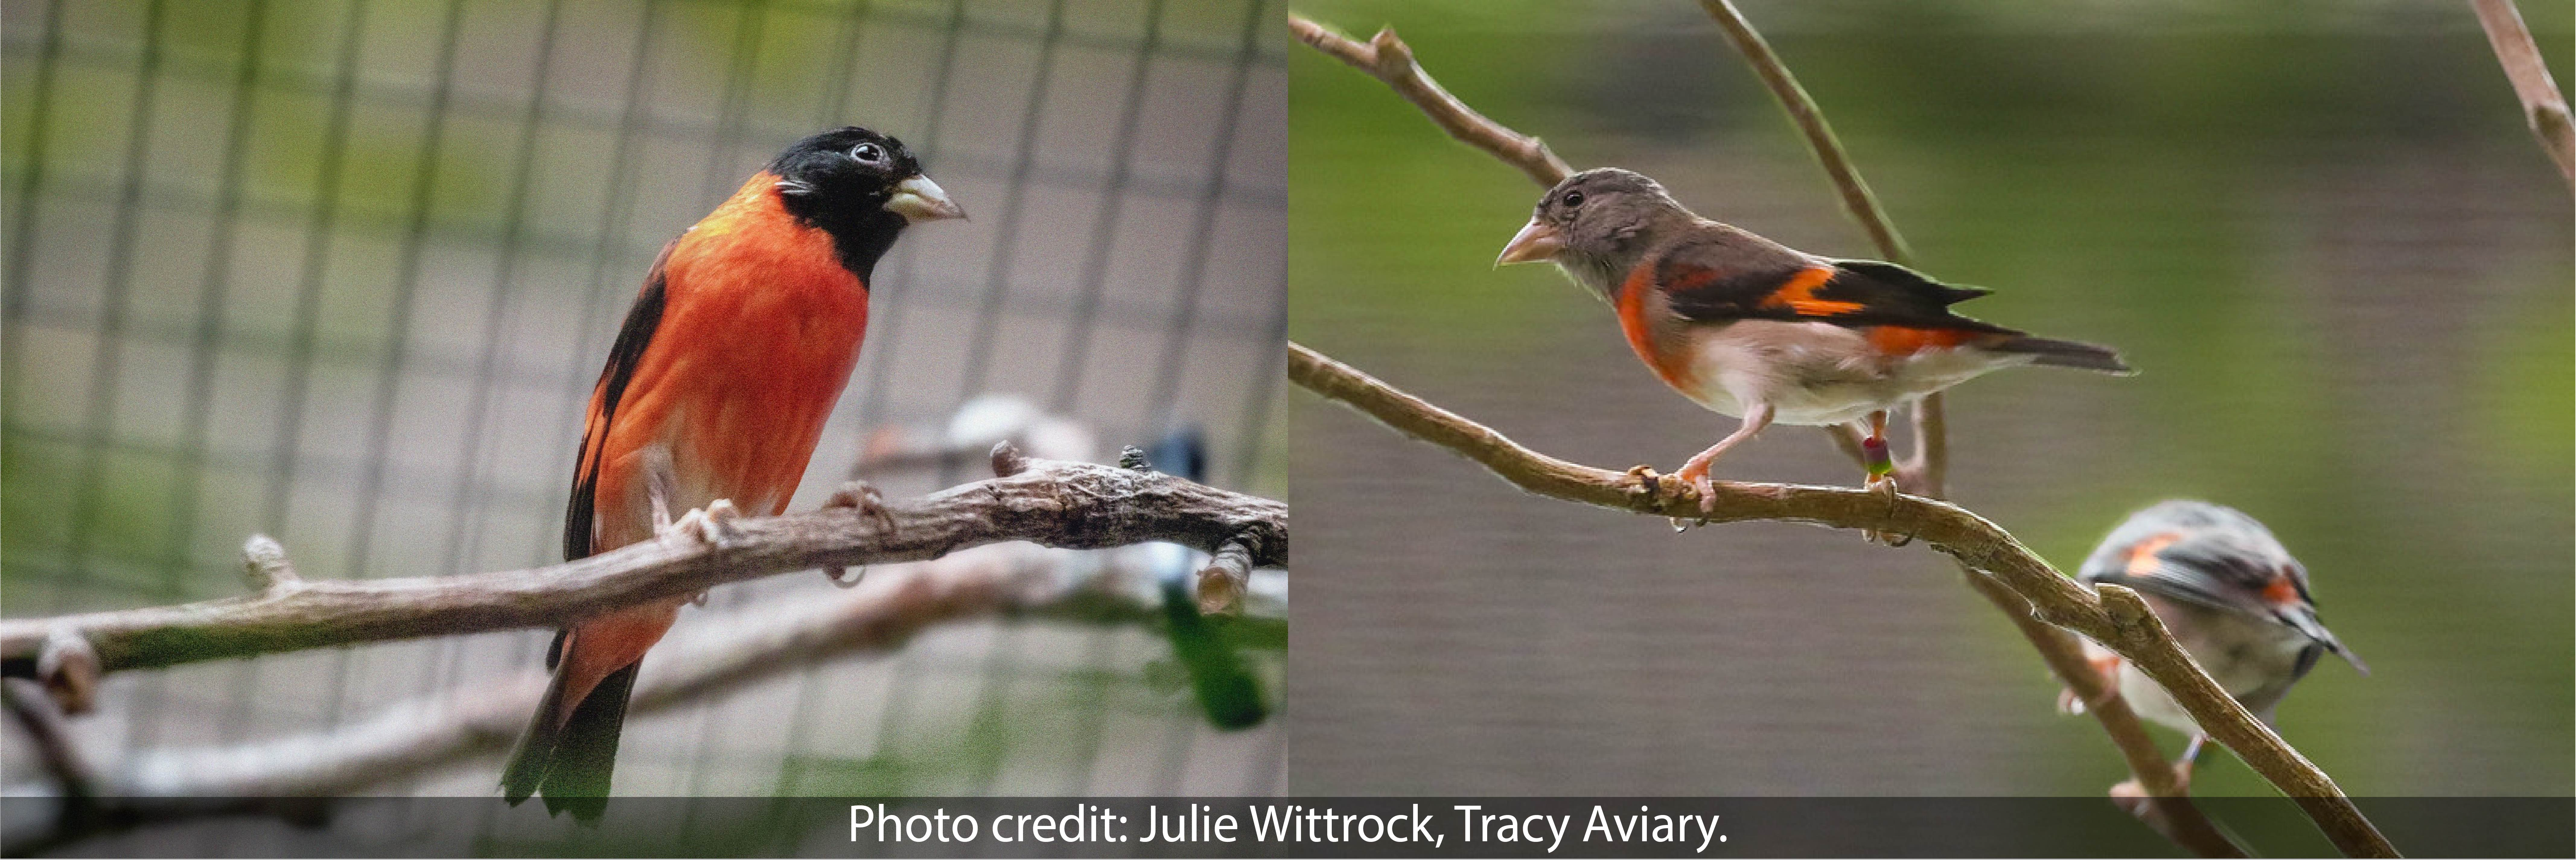 Tracy Aviary joins the Red Siskin Initiative flock!